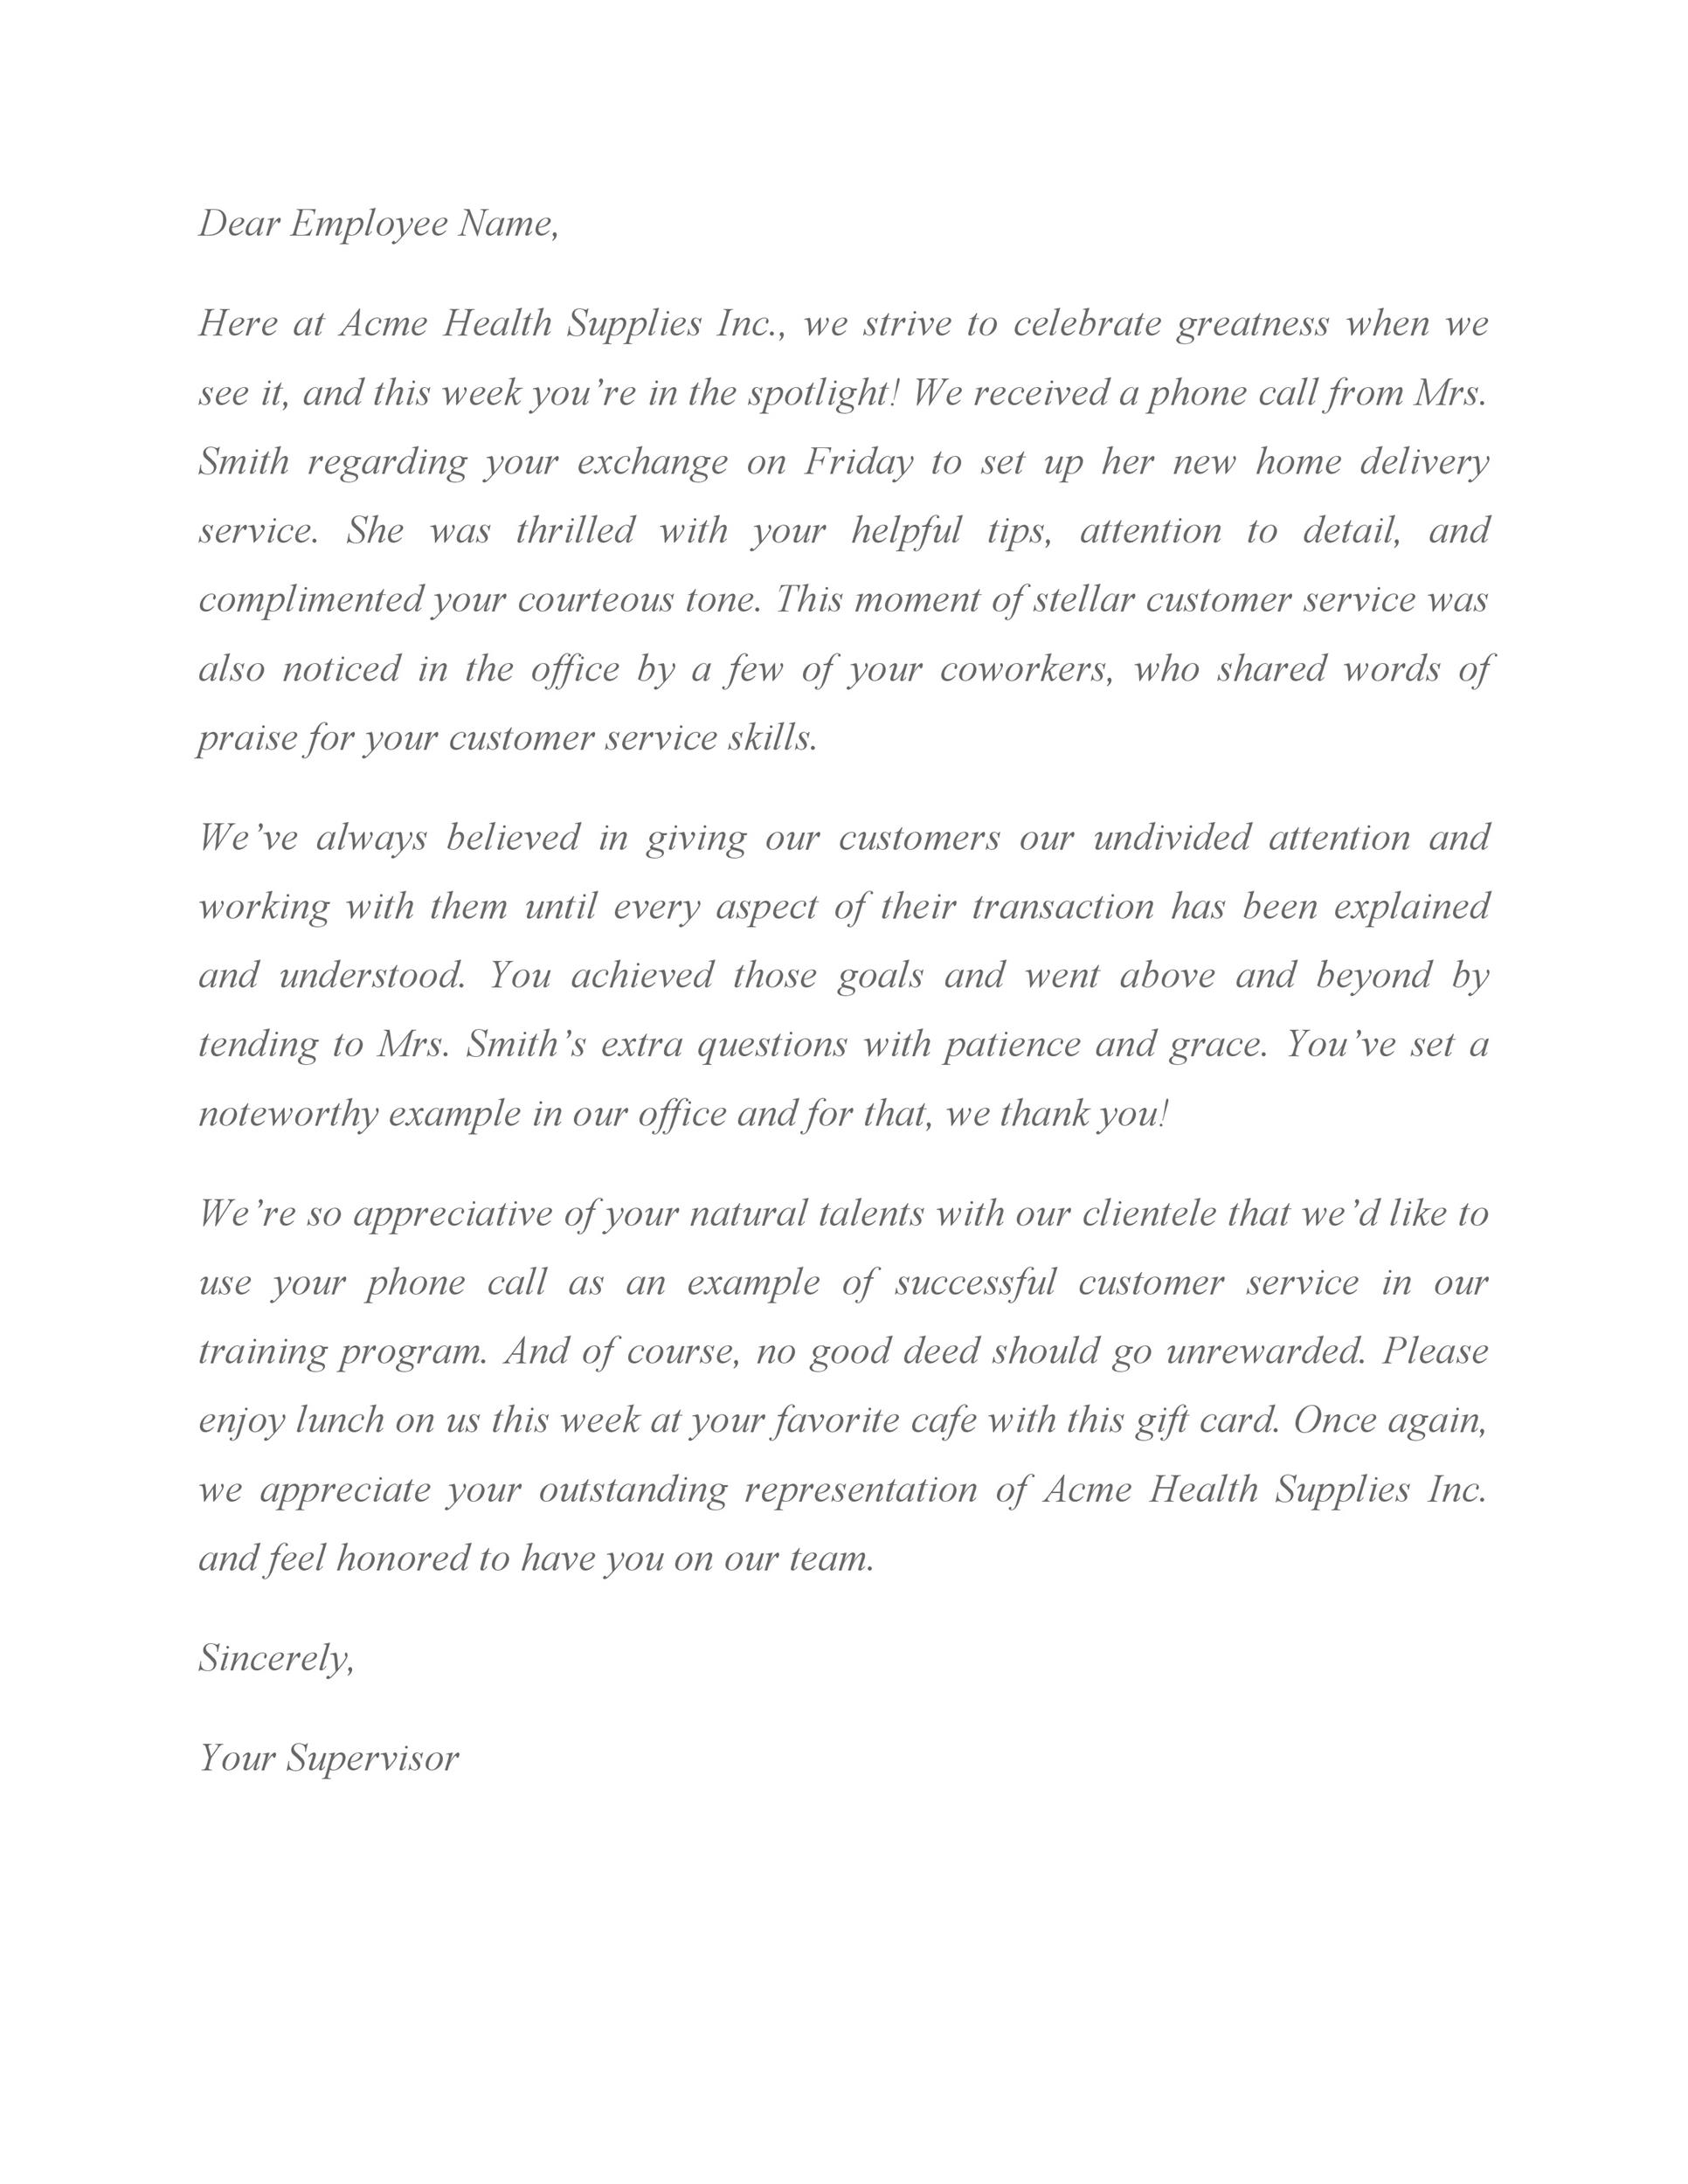 Free recognition letter 28